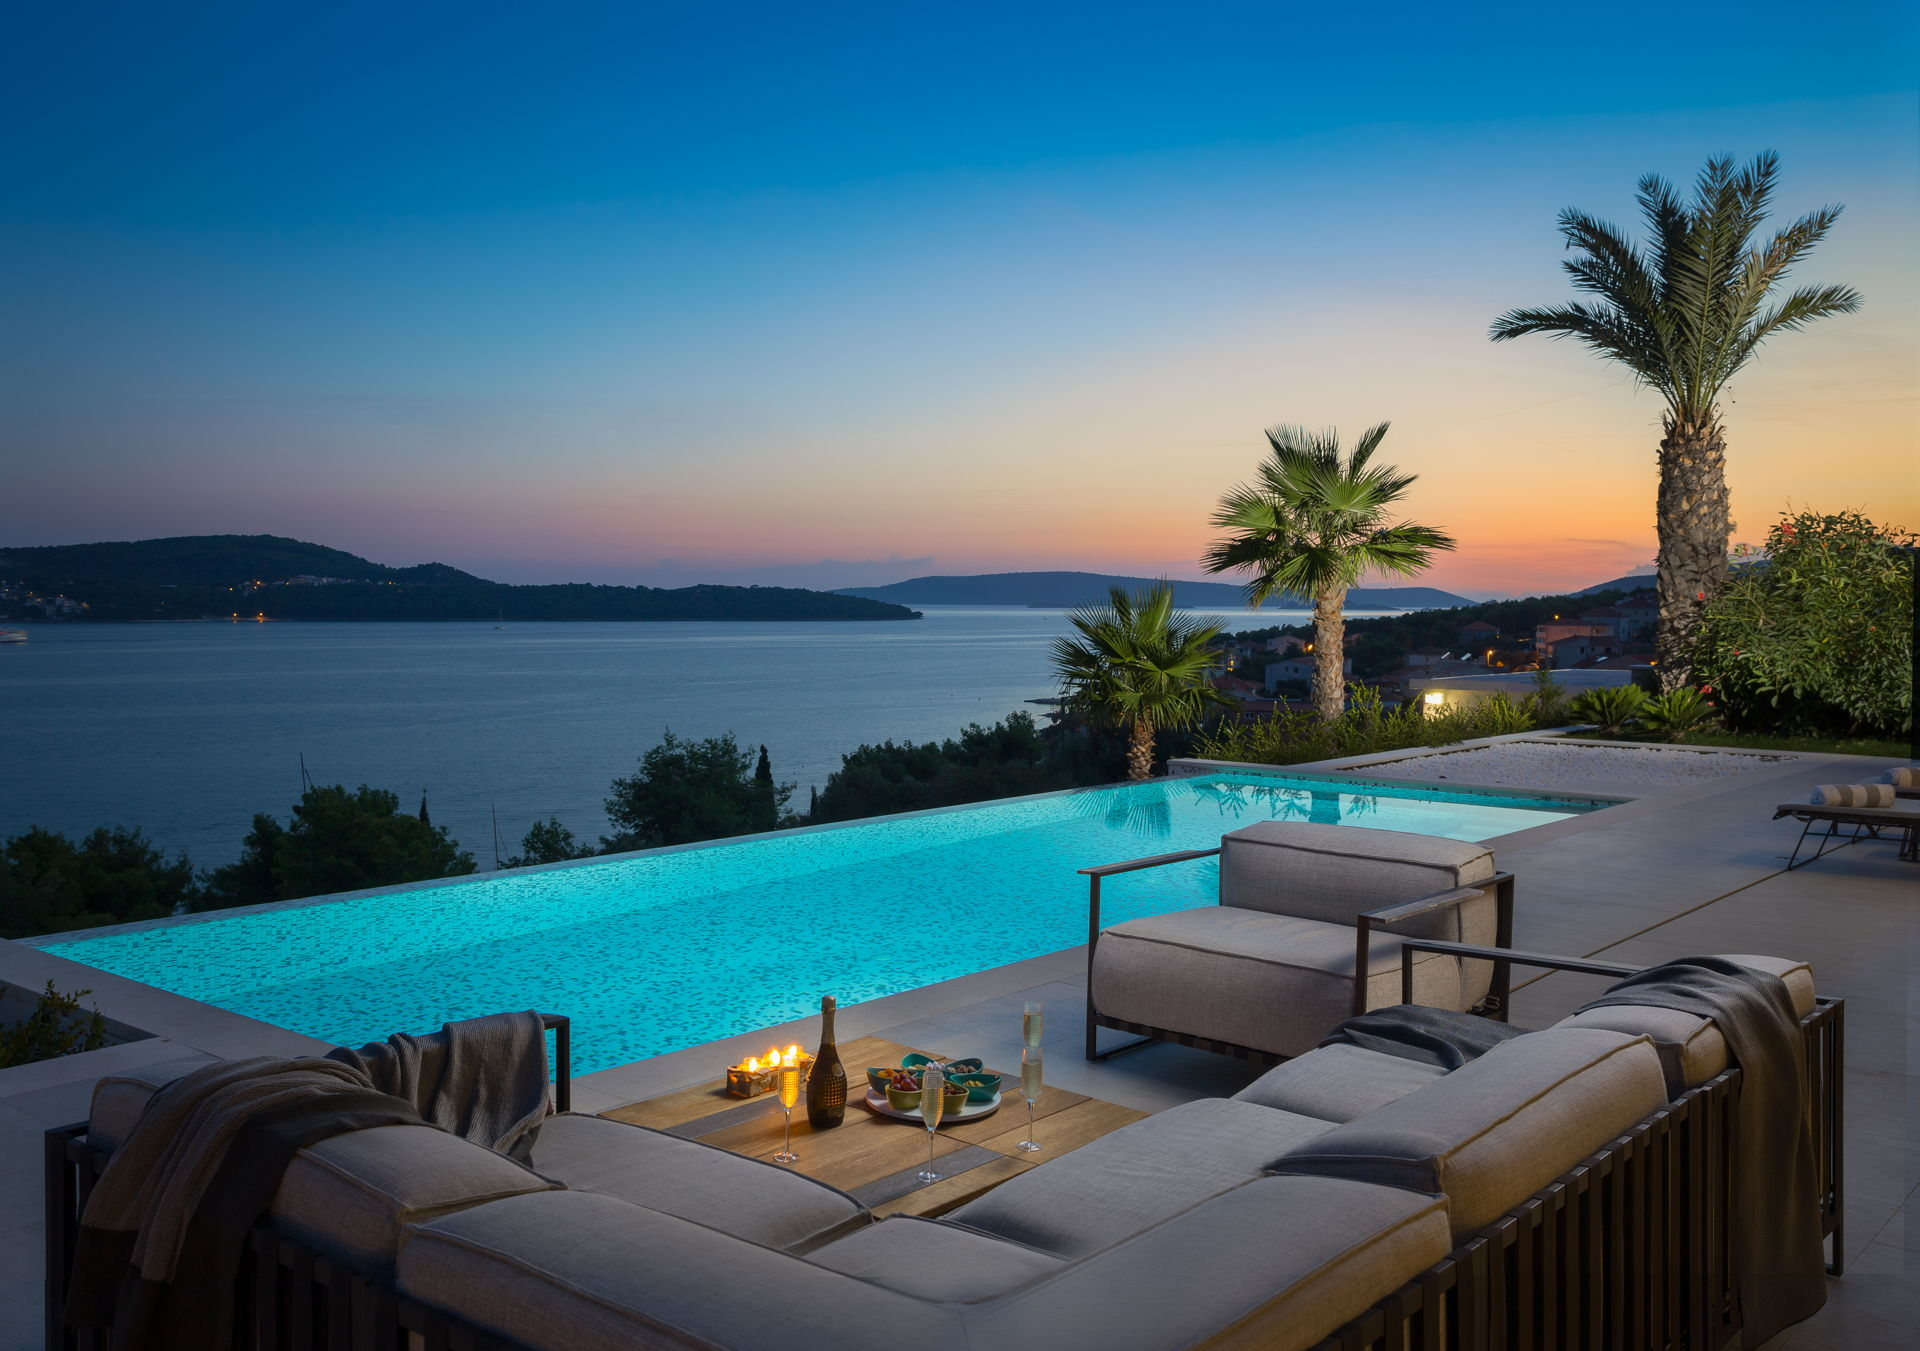 Sunset view from the Infinity Pool in Luxury Villa Elyzeum